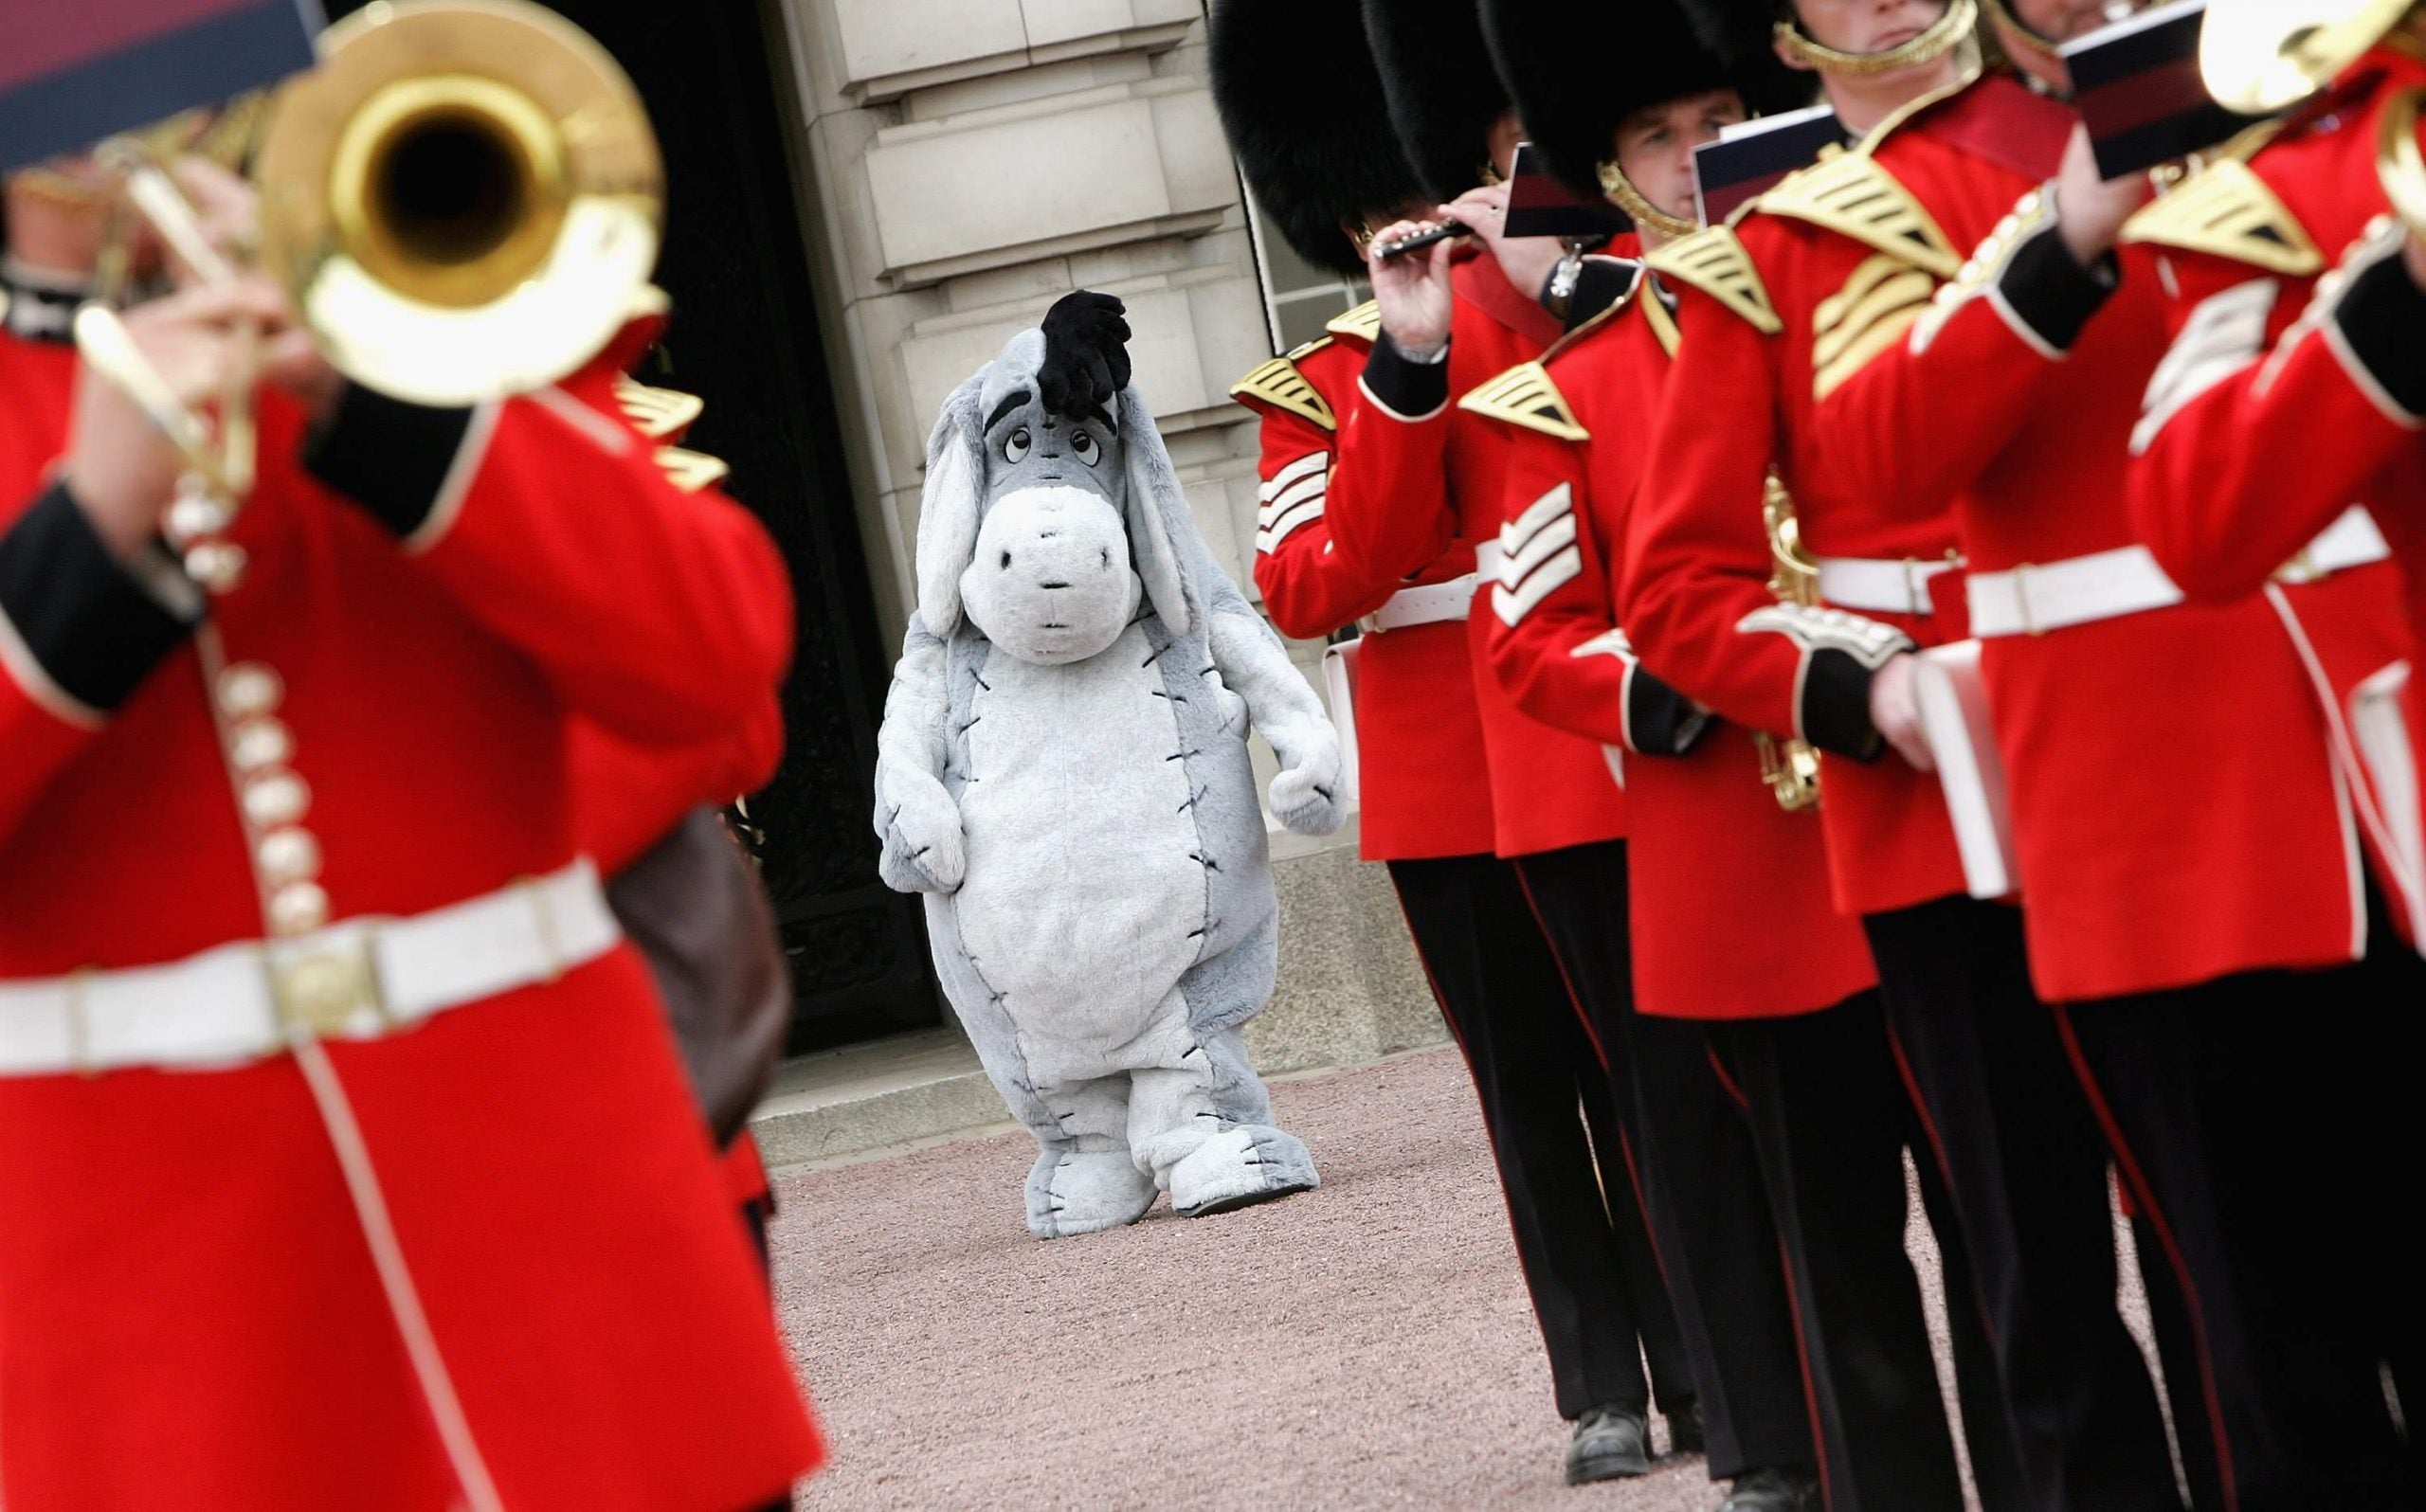 Ignore the Brexiteer Tiggers - Eeyore is the perfect national role model